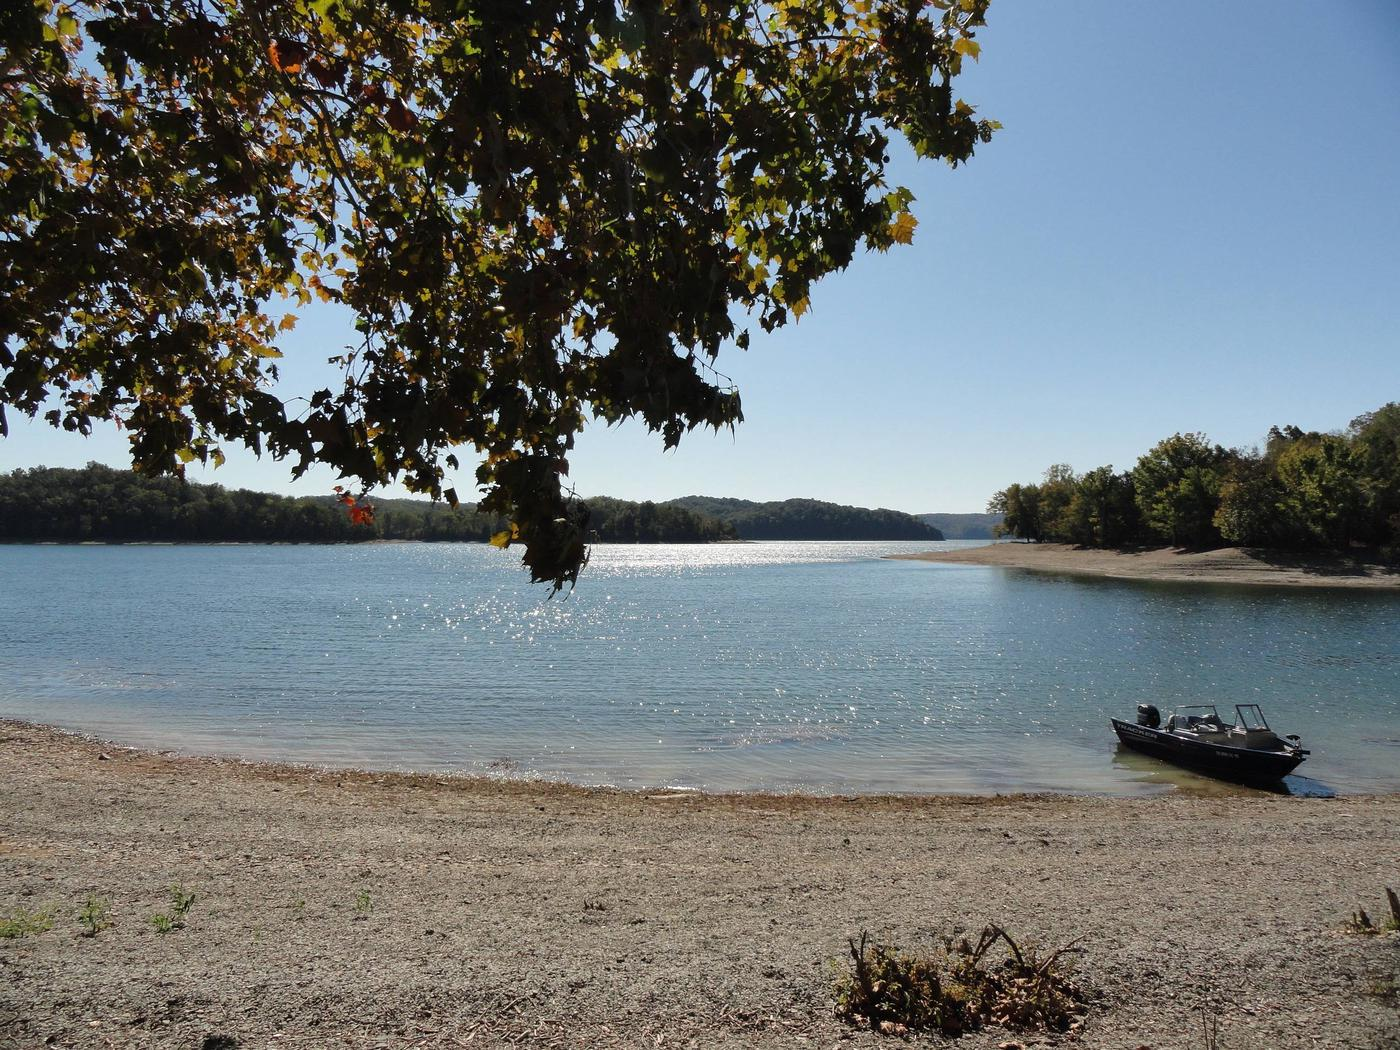 DALE HOLLOW LAKE - PRIMITIVE CAMPING EXAMPLE LAKE FRONT CAMPING